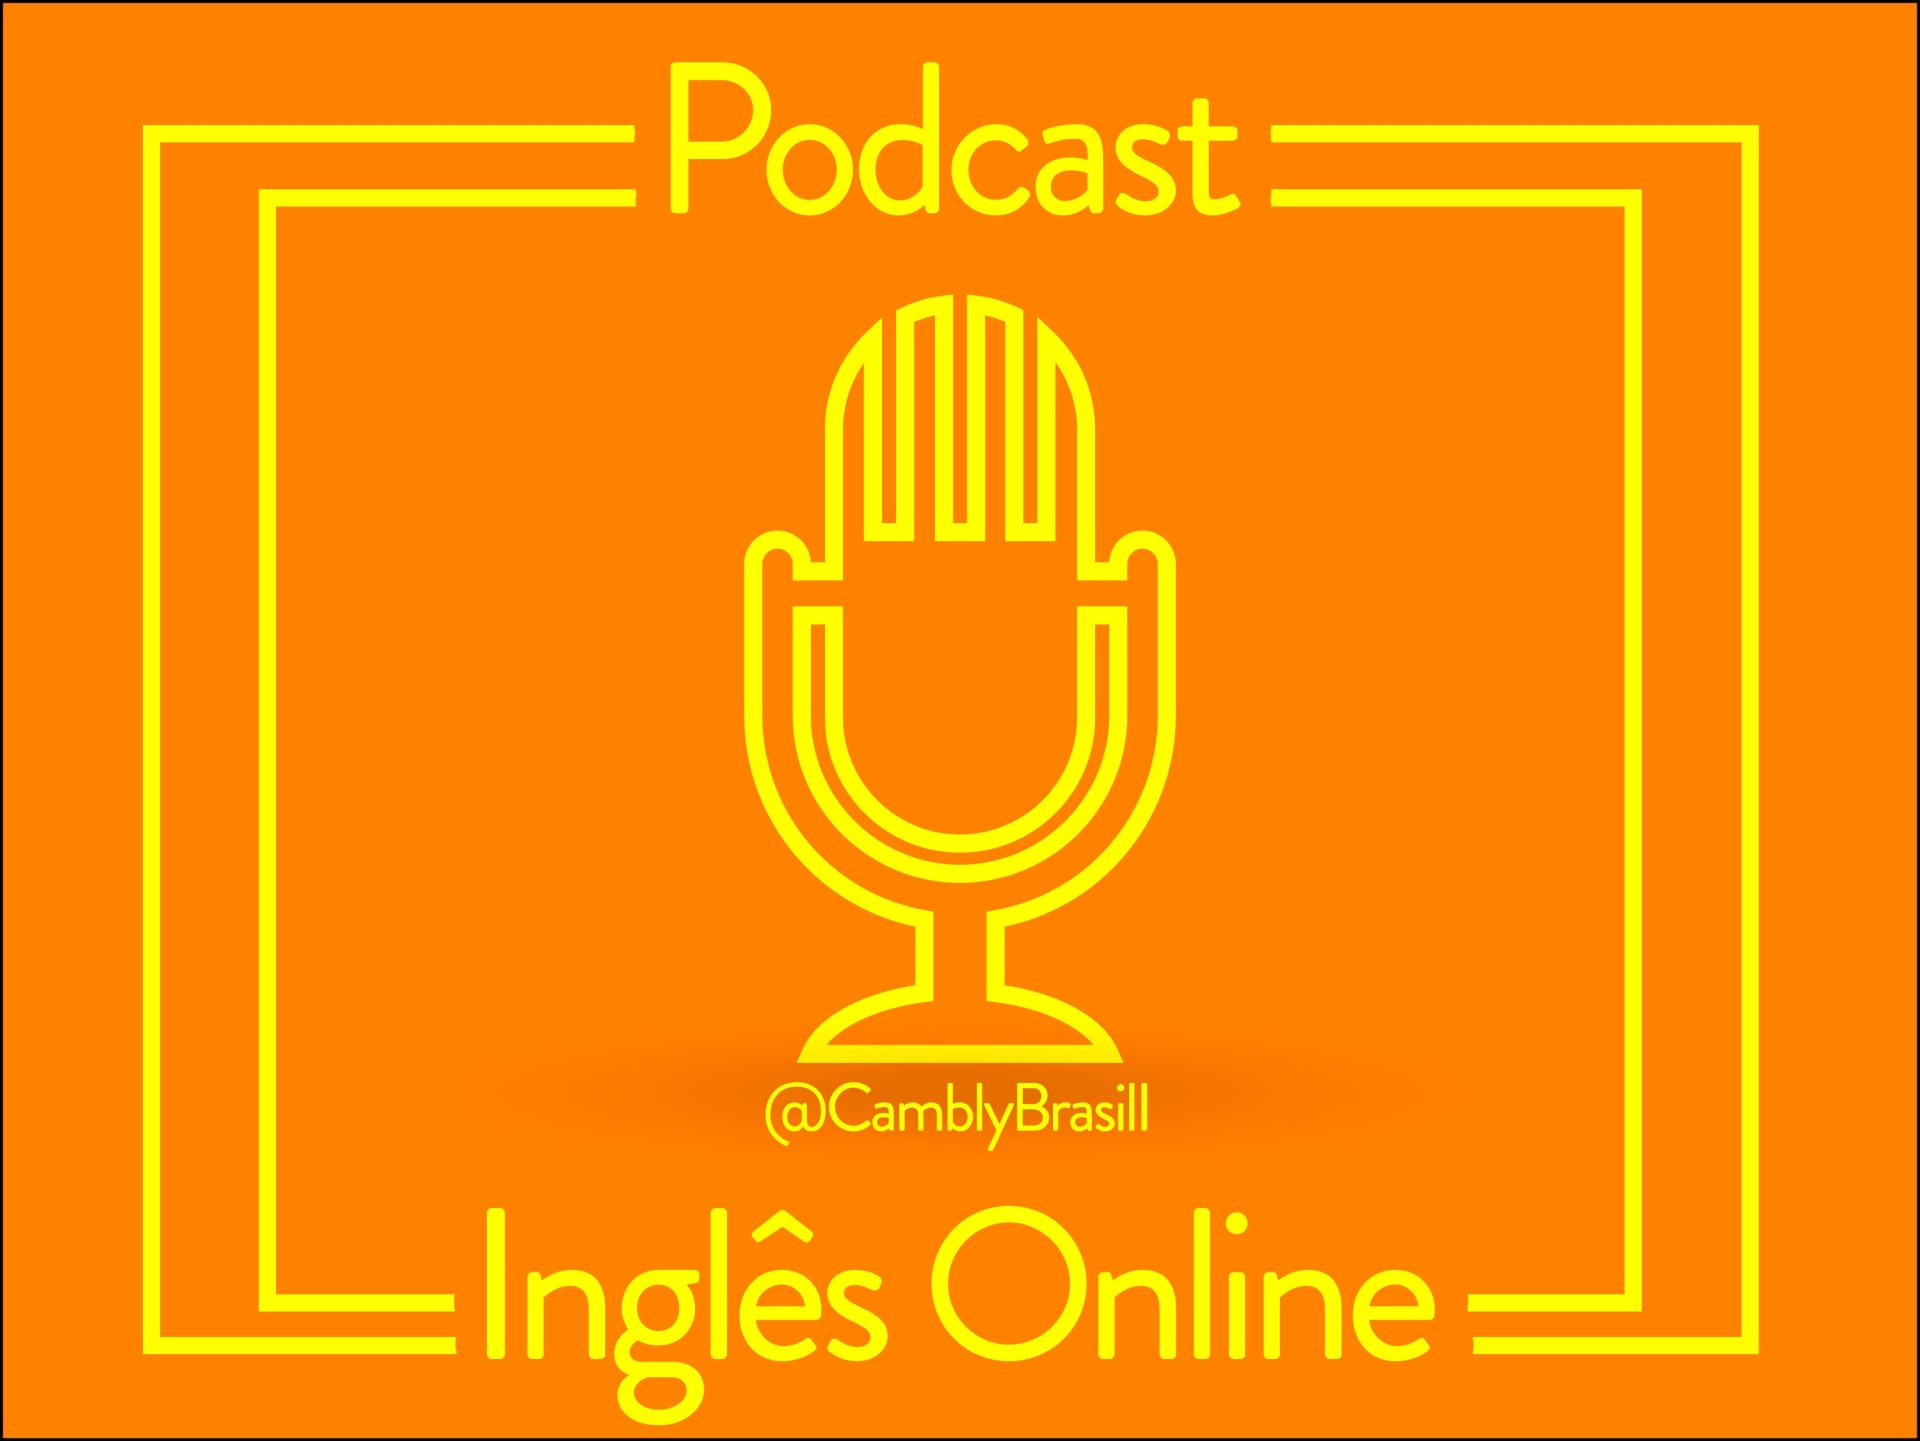 podcast ingles online do cambly brasil